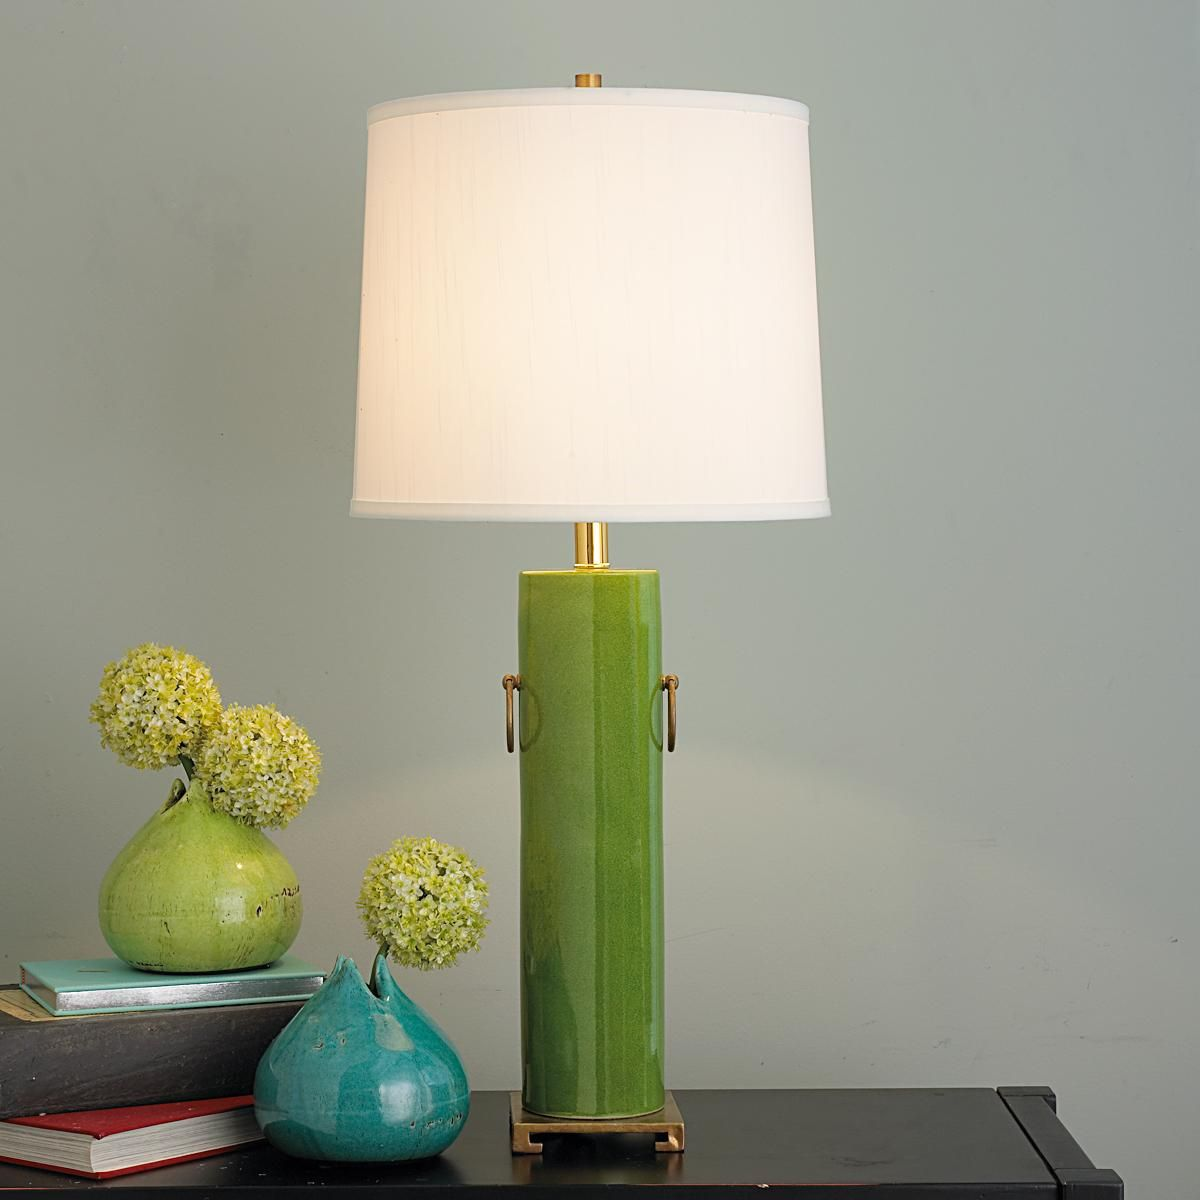 Double Handle Cylinder Table Lamp Colorful Table Lamp Unique Table Lamps Table Lamp Design